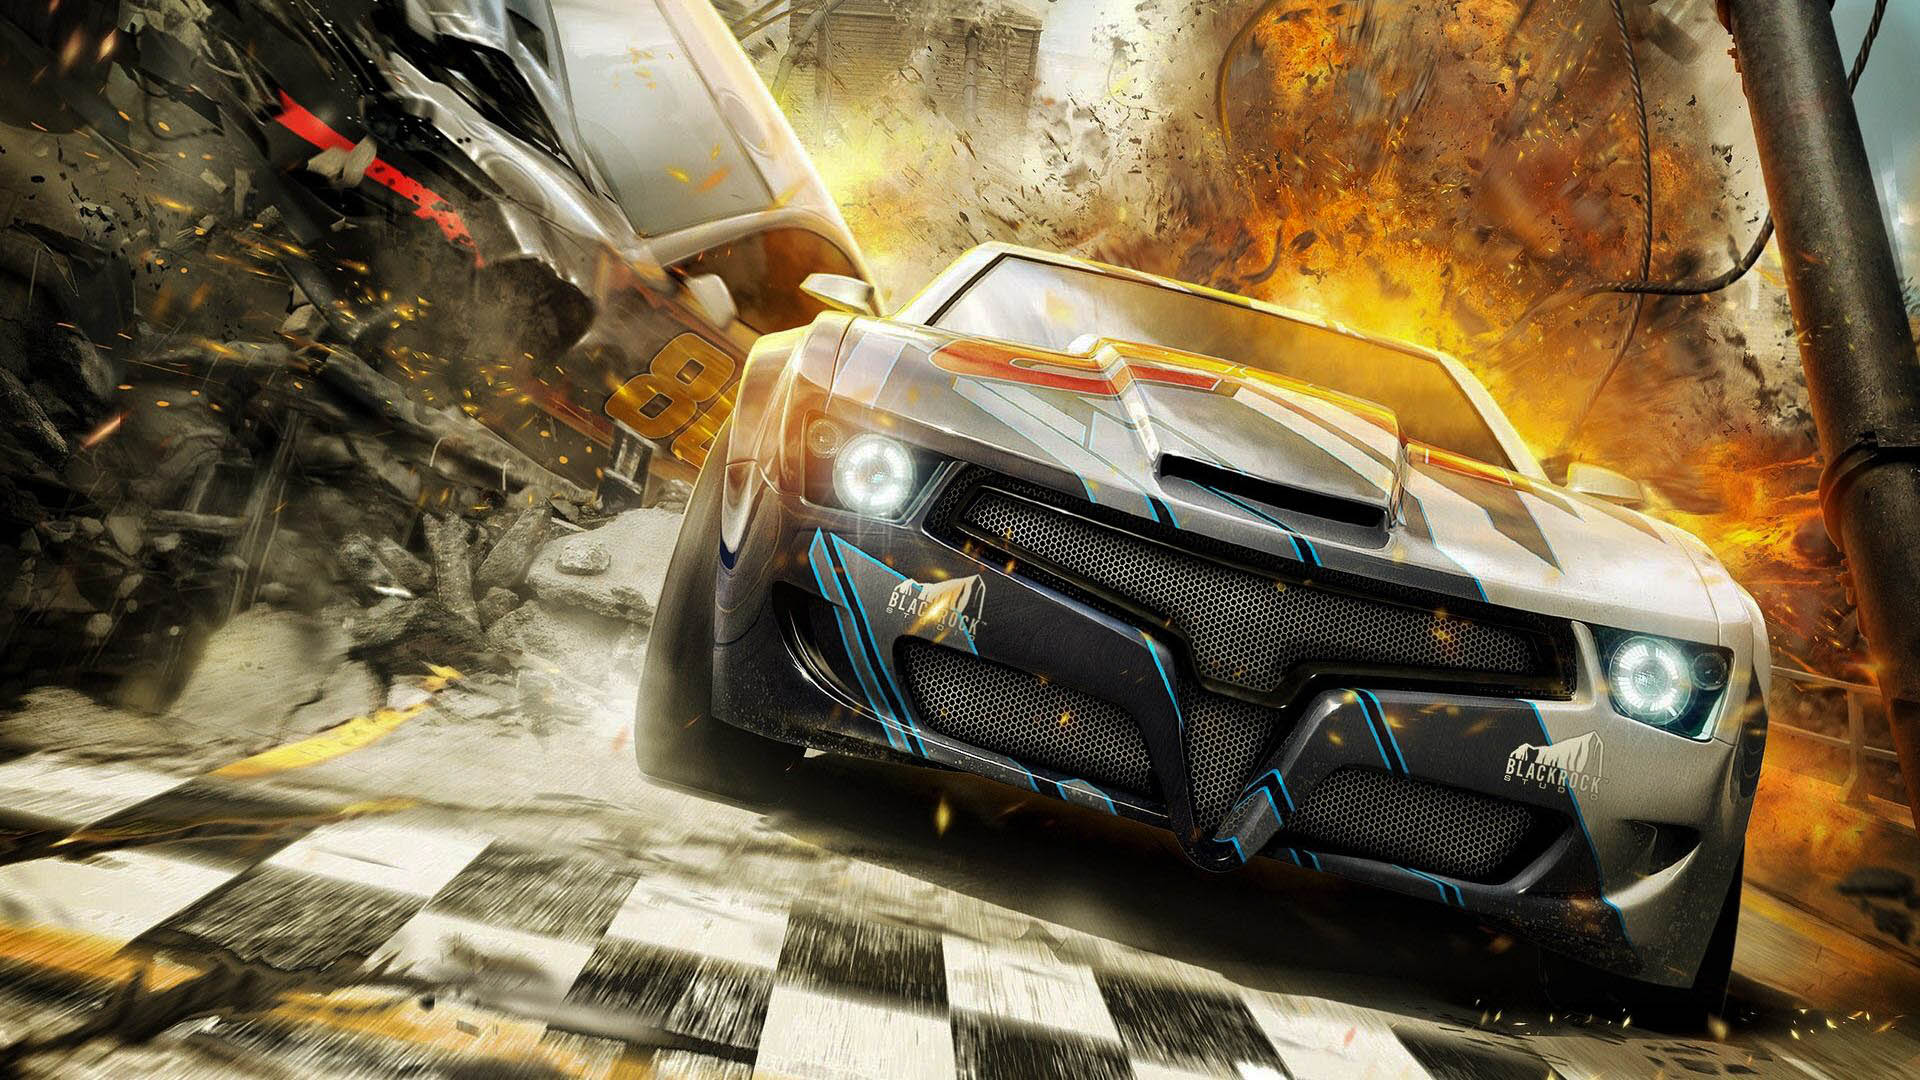 3d Games Hd Wallpaper For Mobile: Split Second Game High Quality HD Wallpapers